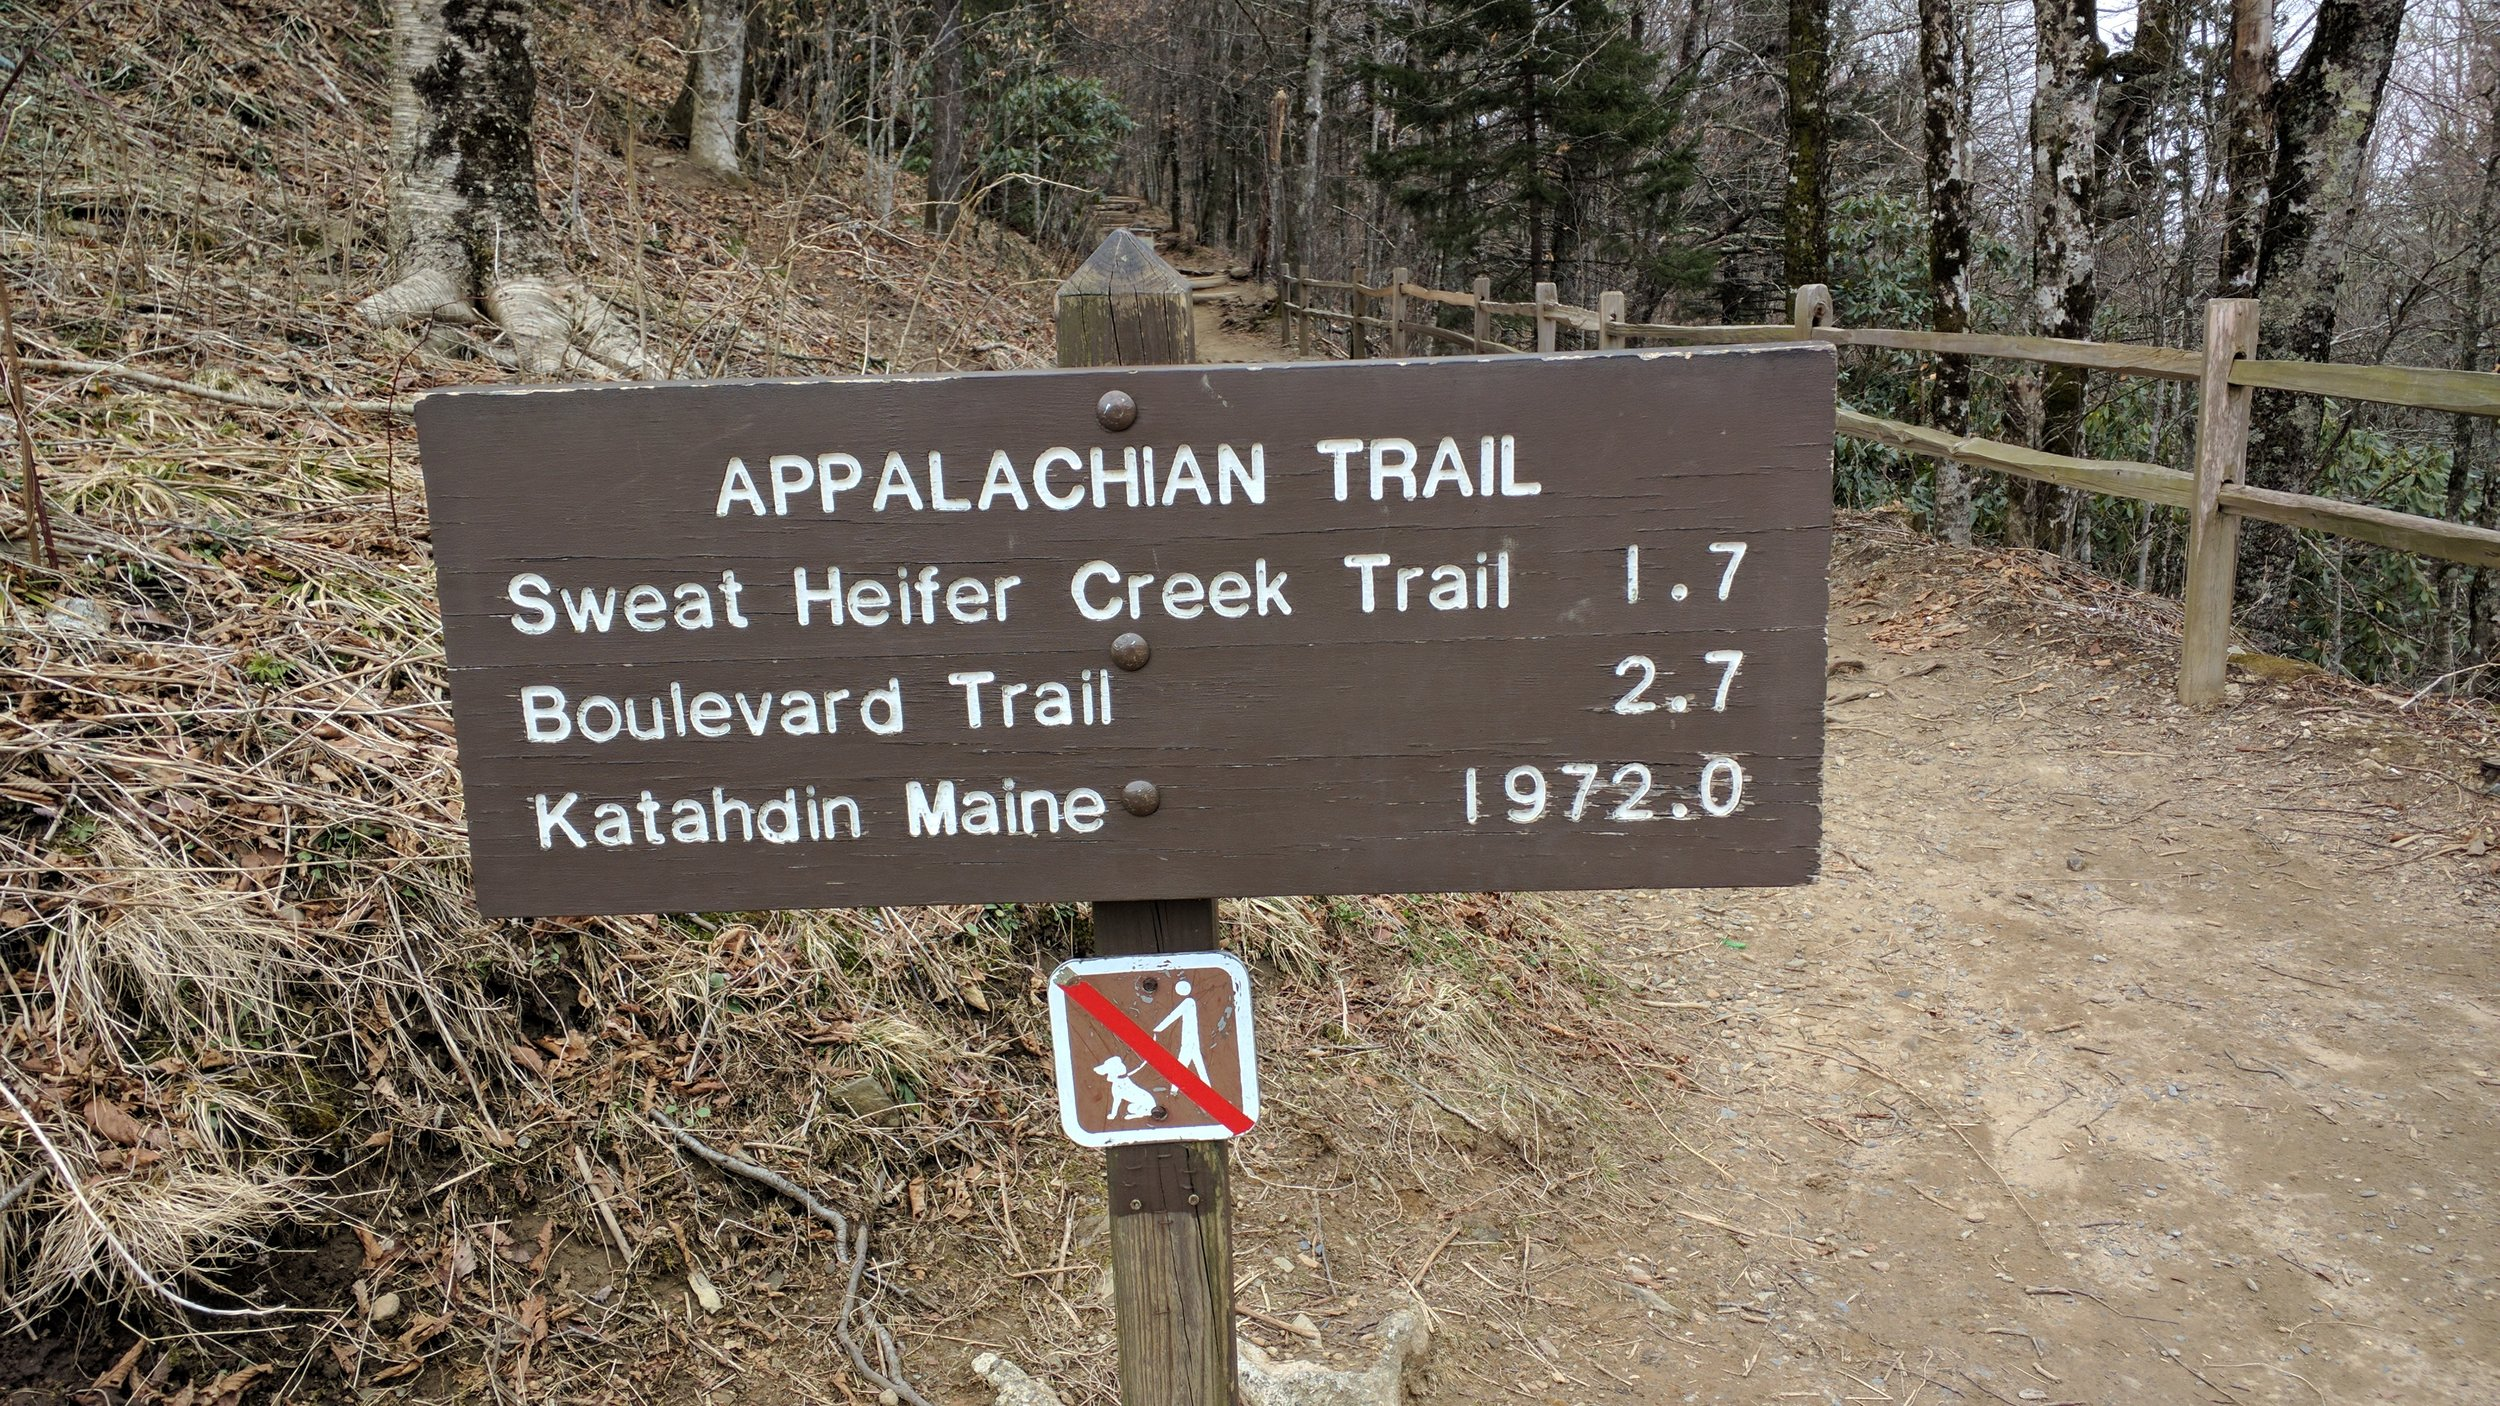 Unfortunately that mileage to Katahdin is out of date. It's actually further.